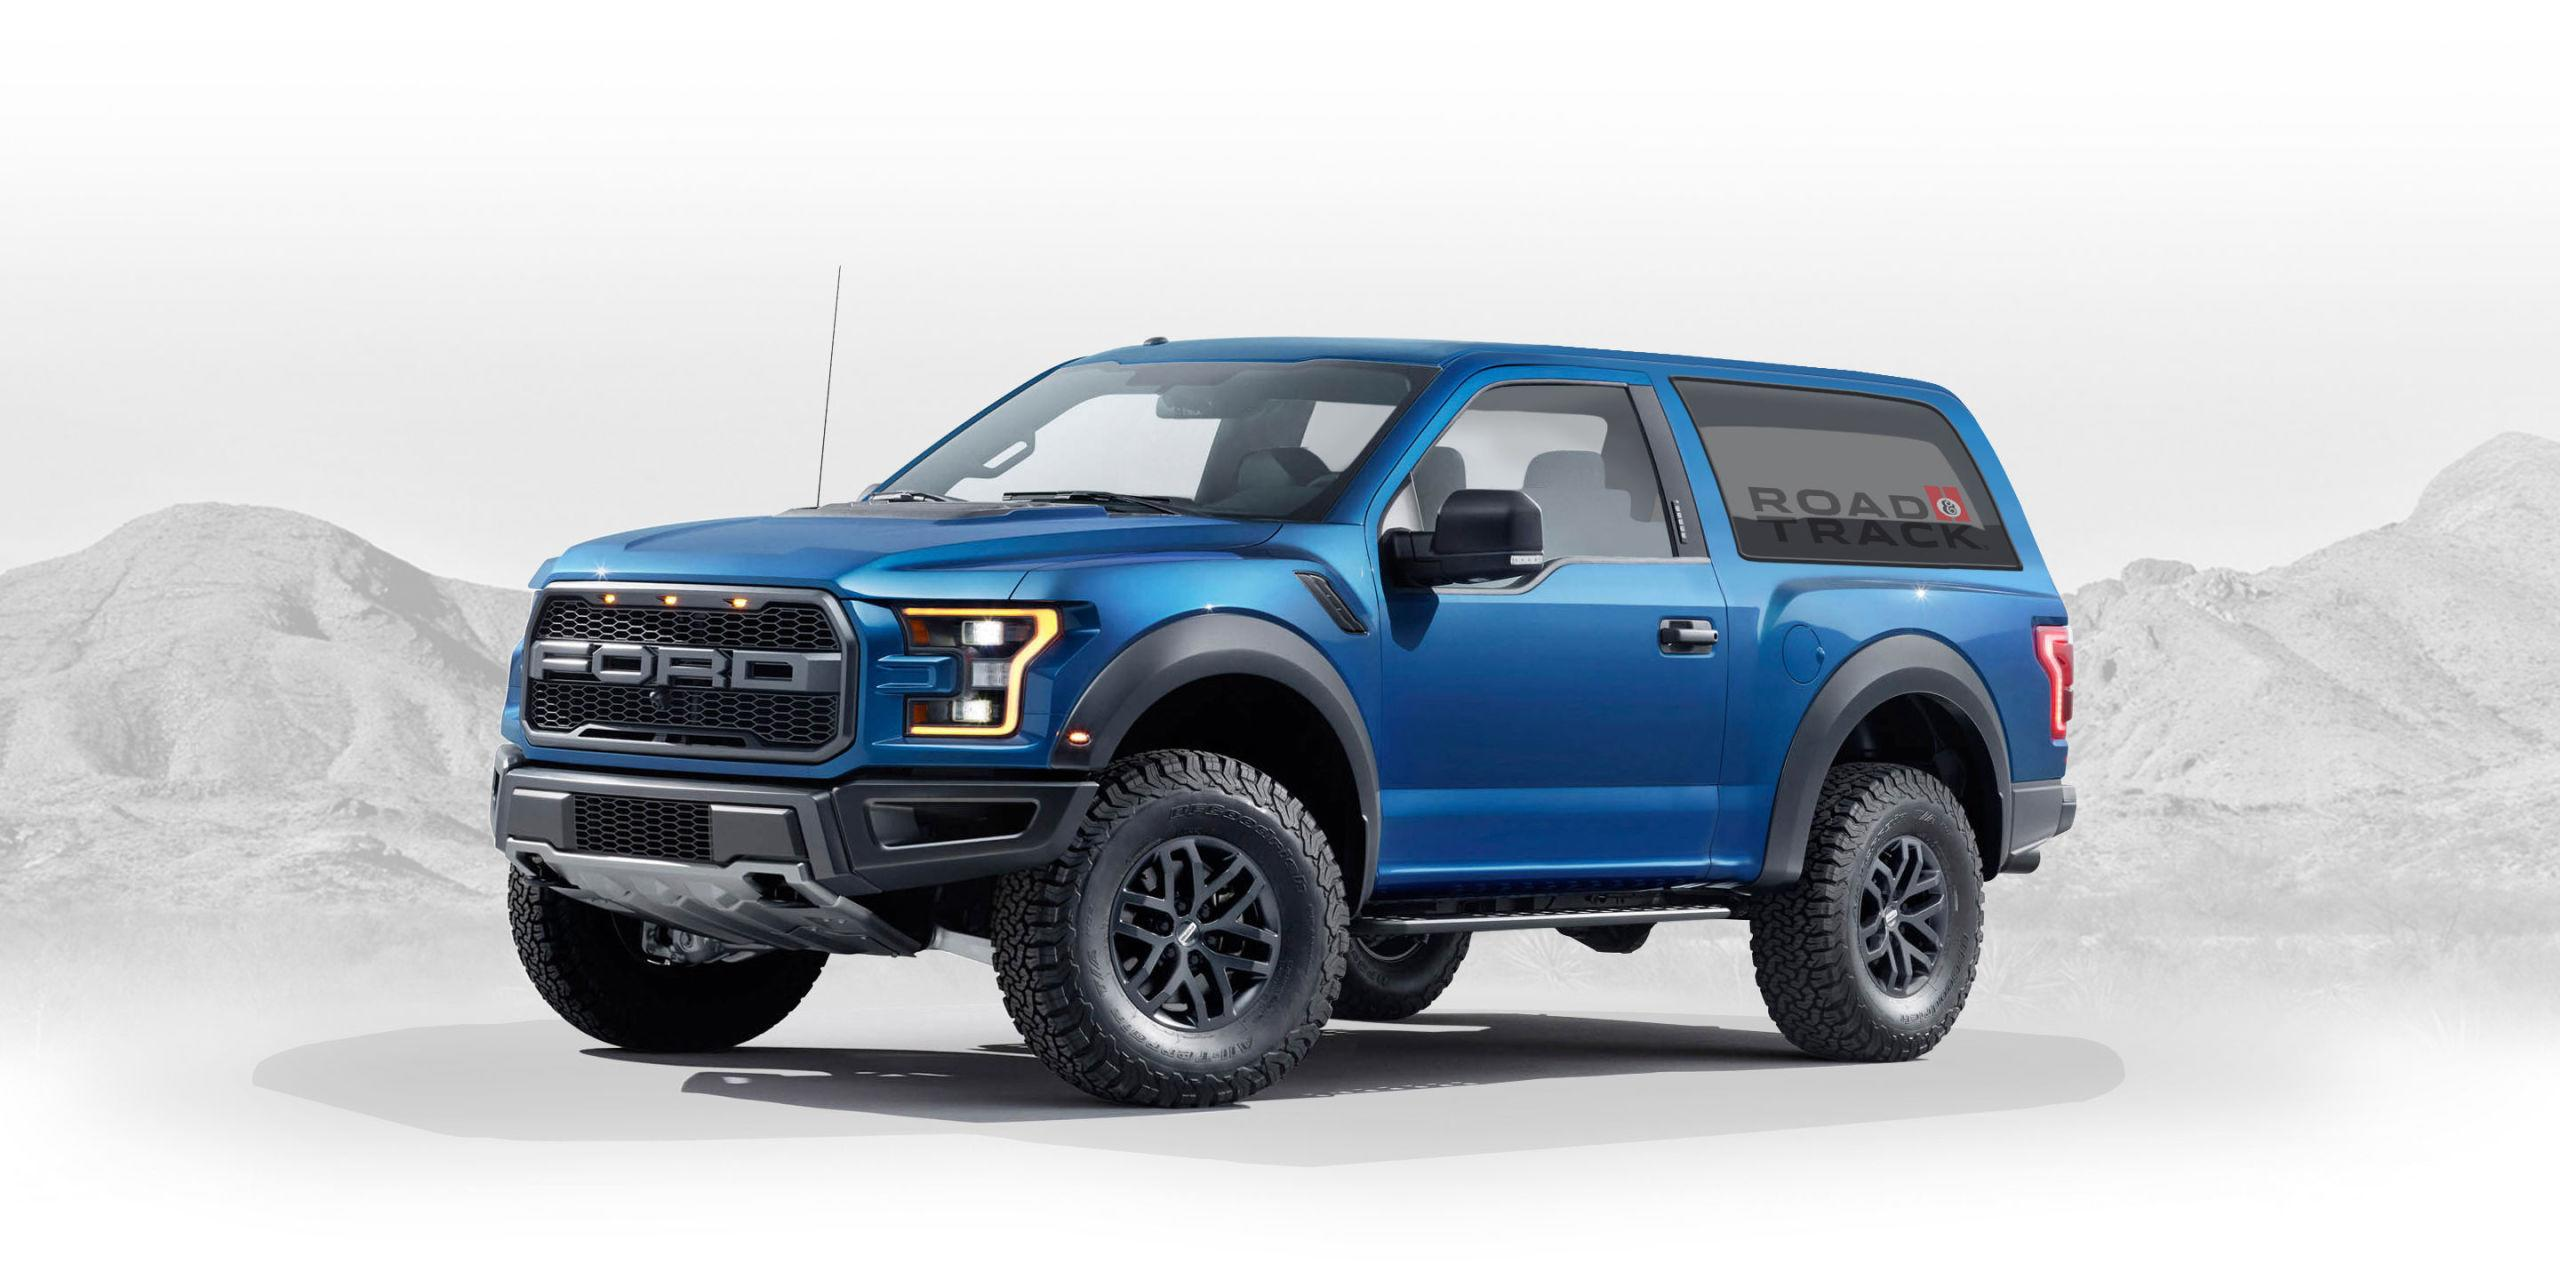 Raptor-Based 2020 Ford Bronco Concept Designed by a Fan Is Perfection